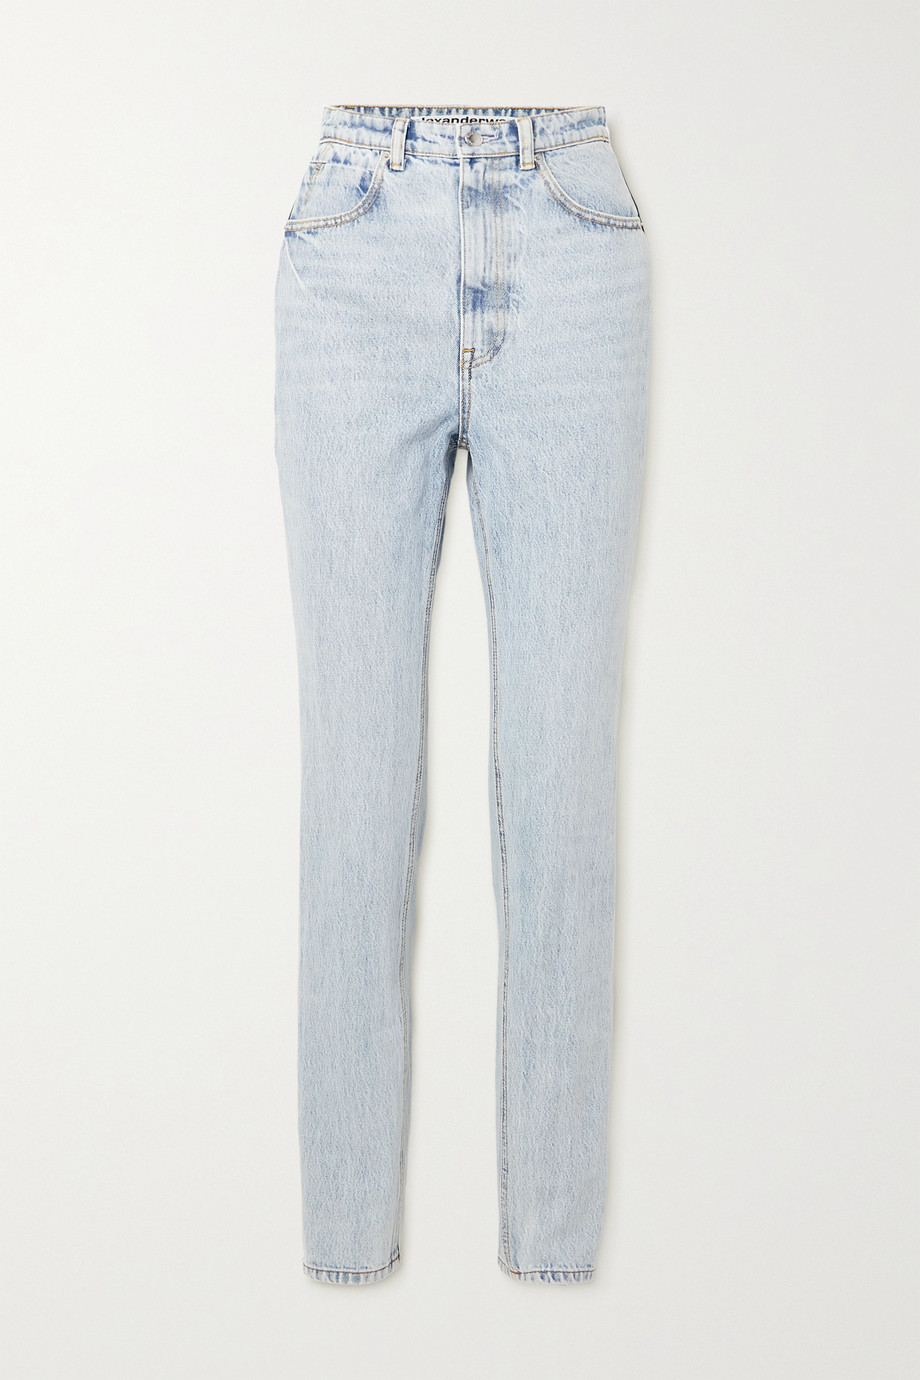 Alexander Wang Satin-trimmed high-rise tapered jeans